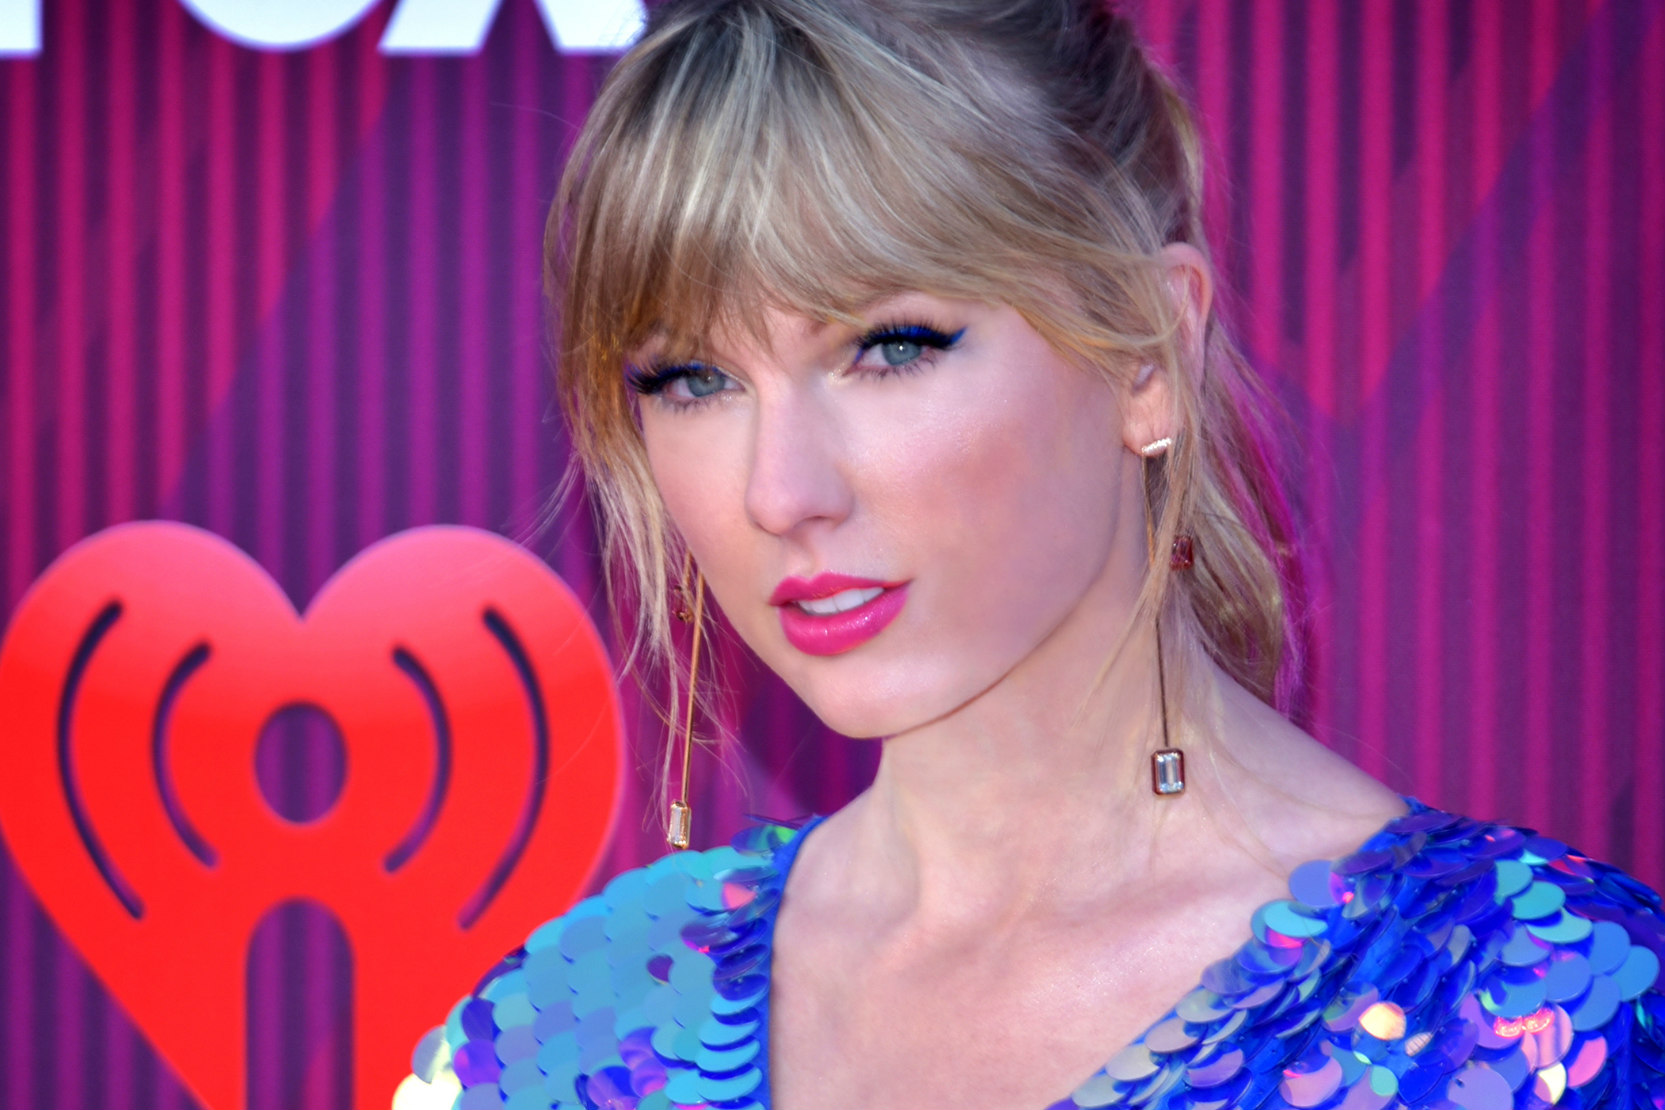 Taylor Swift, a white woman with blond bangs and pink lipstick, poses on a red carpet